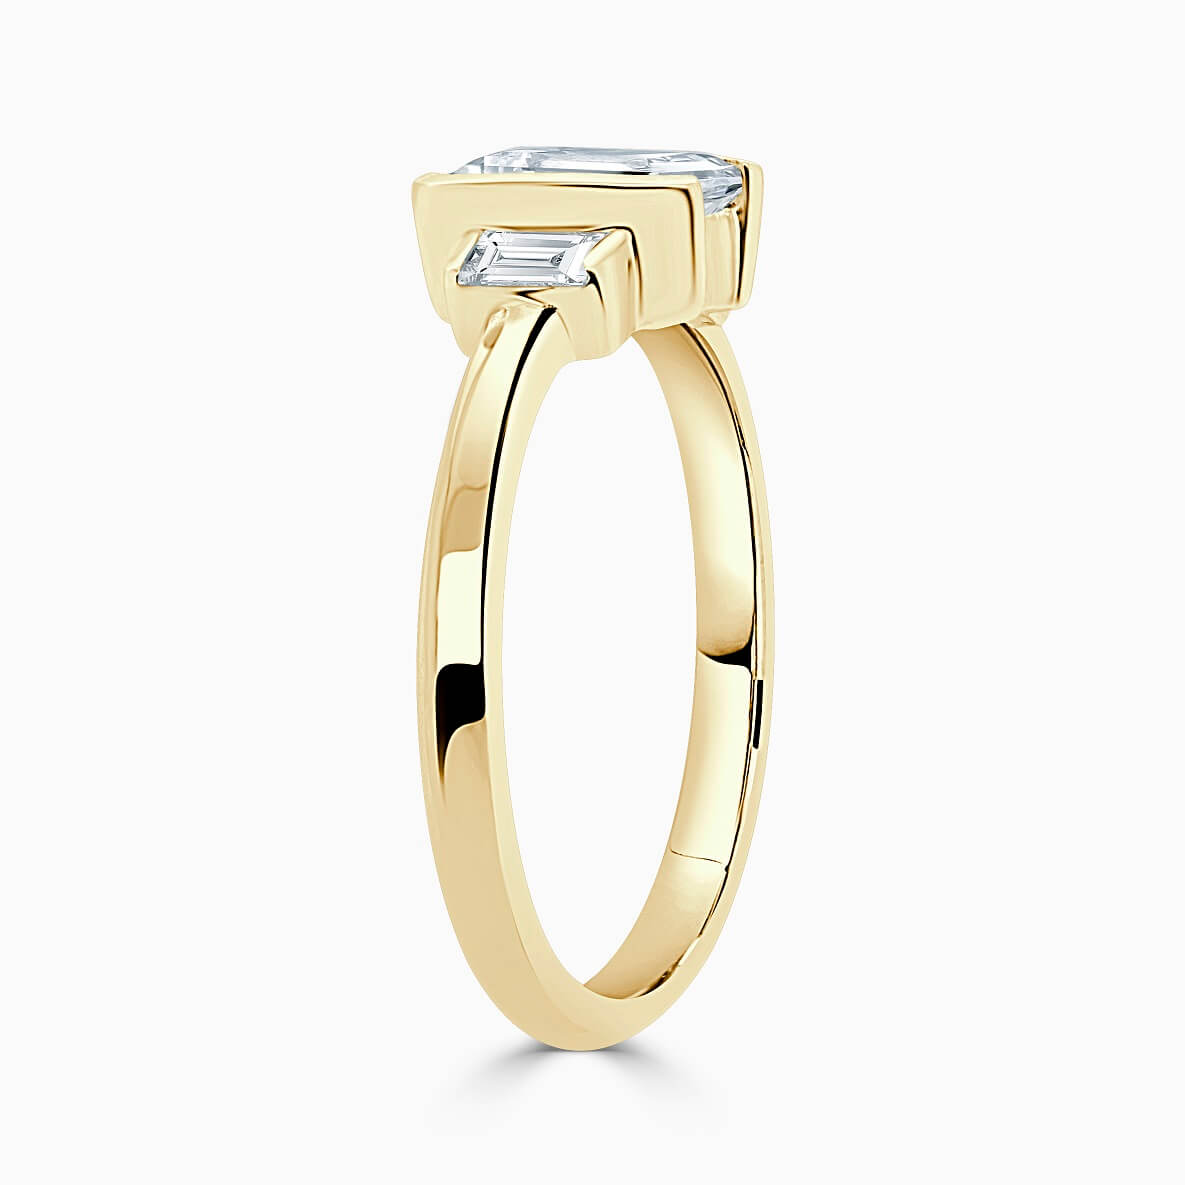 18ct Yellow Gold Emerald Cut Art Deco 3 Stone With Baguettes Engagement Ring